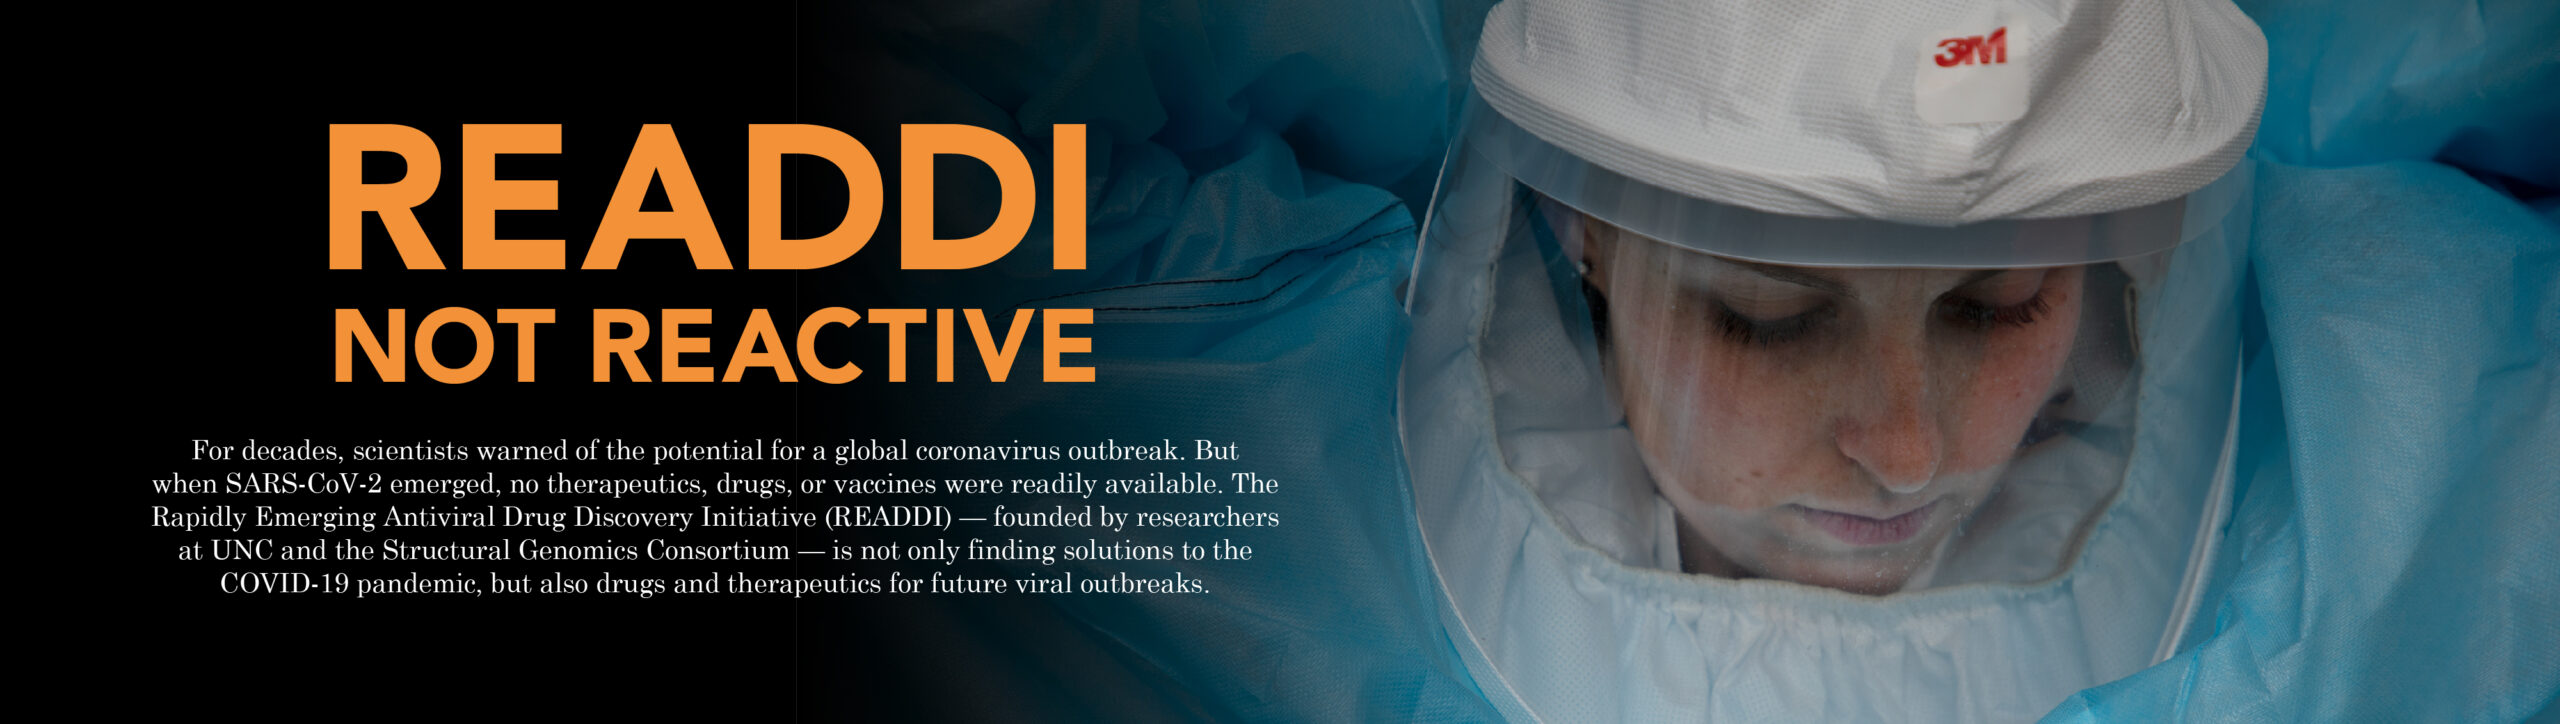 "Main feature banner for the story ""READDI, Not Reactive"" with an image of a researcher putting on full PPE gear. The description for this story reads: ""For decades, scientists warned of the potential for a global coronavirus outbreak. But when SARS-CoV-2 emerged, no therapeutics, drugs, or vaccines were readily available. The Rapidly Emerging Antiviral Drug Discovery Initiative (READDI) — founded by researchers at UNC and the Structural Genomics Consortium — is not only finding solutions to the COVID-19 pandemic, but also drugs and therapeutics for future viral outbreaks."" Click here to read this story."